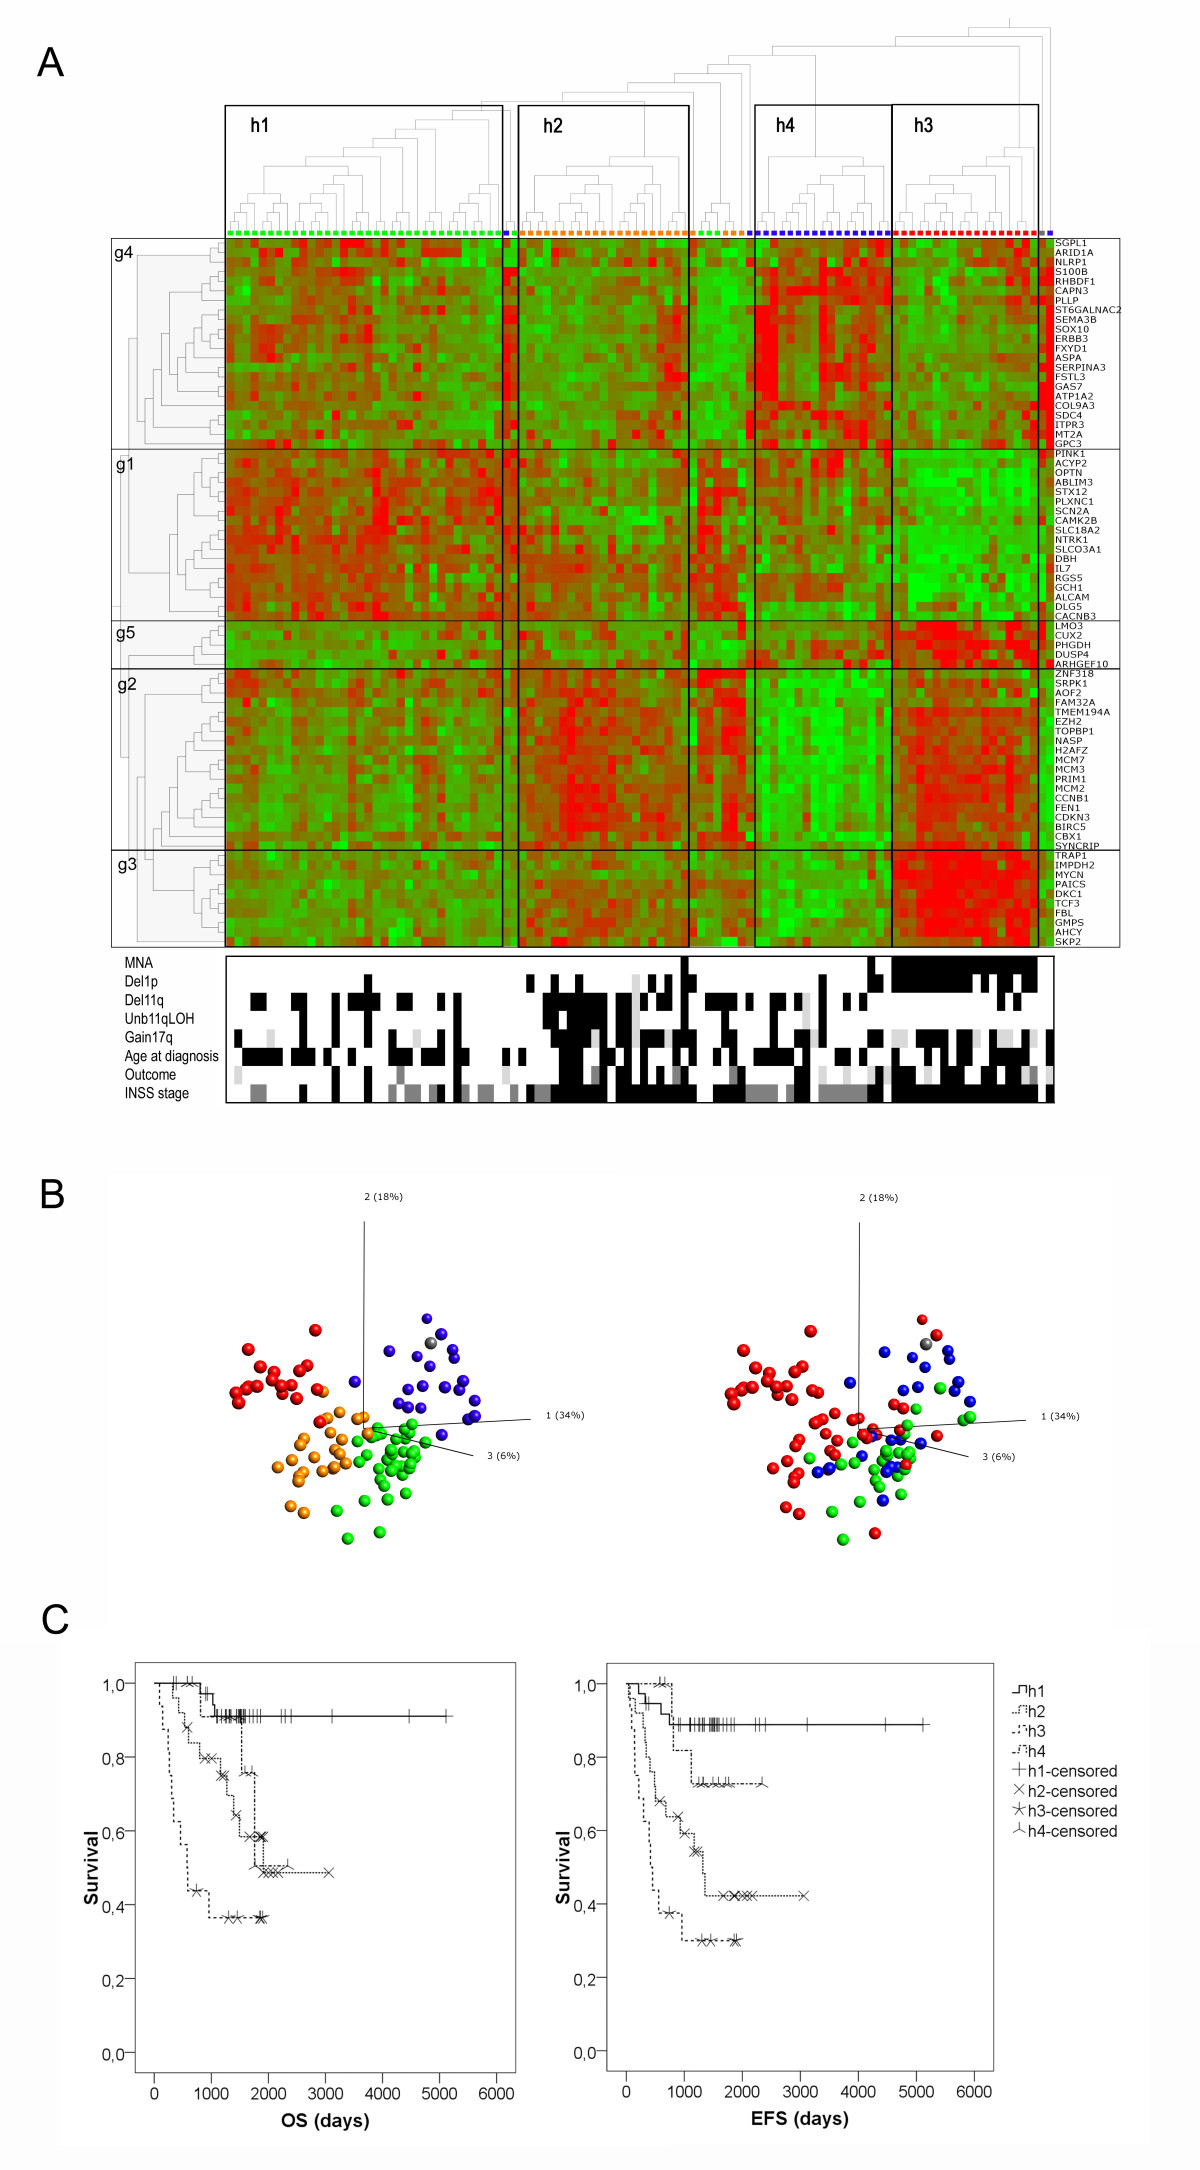 https://static-content.springer.com/image/art%3A10.1186%2F1475-2867-11-9/MediaObjects/12935_2010_Article_288_Fig3_HTML.jpg